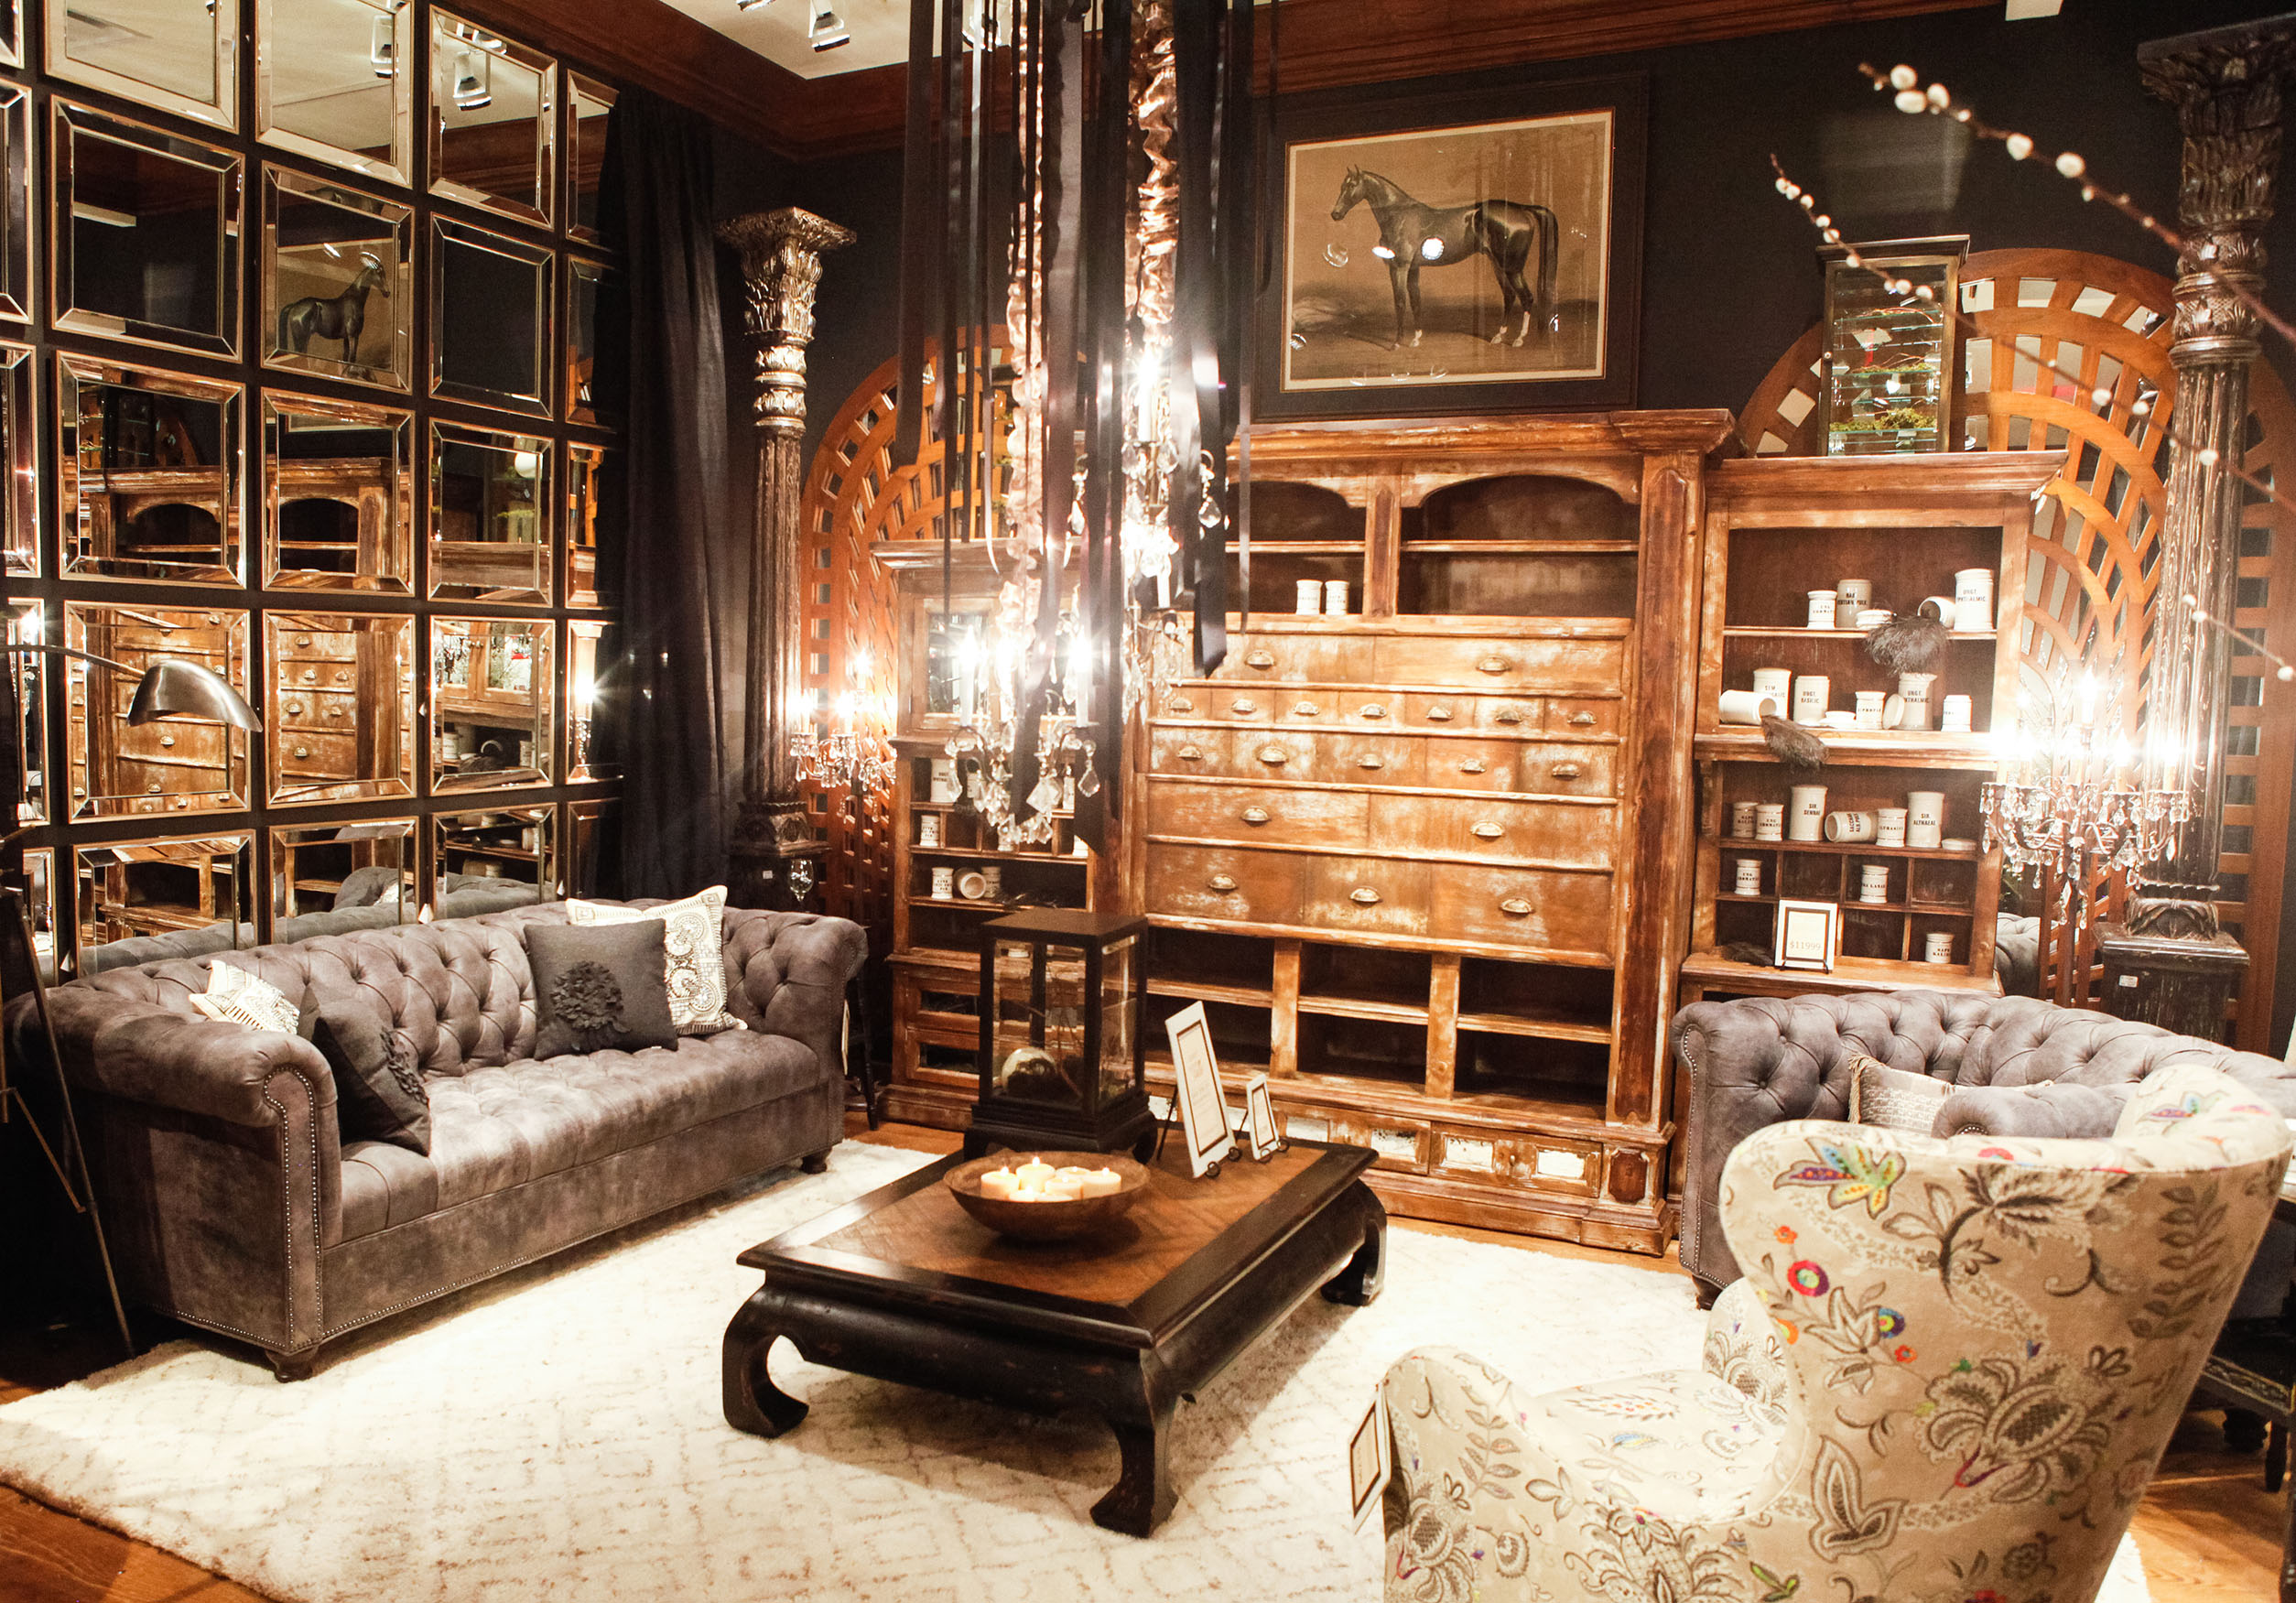 Austin Arhaus Arhaus Furniture